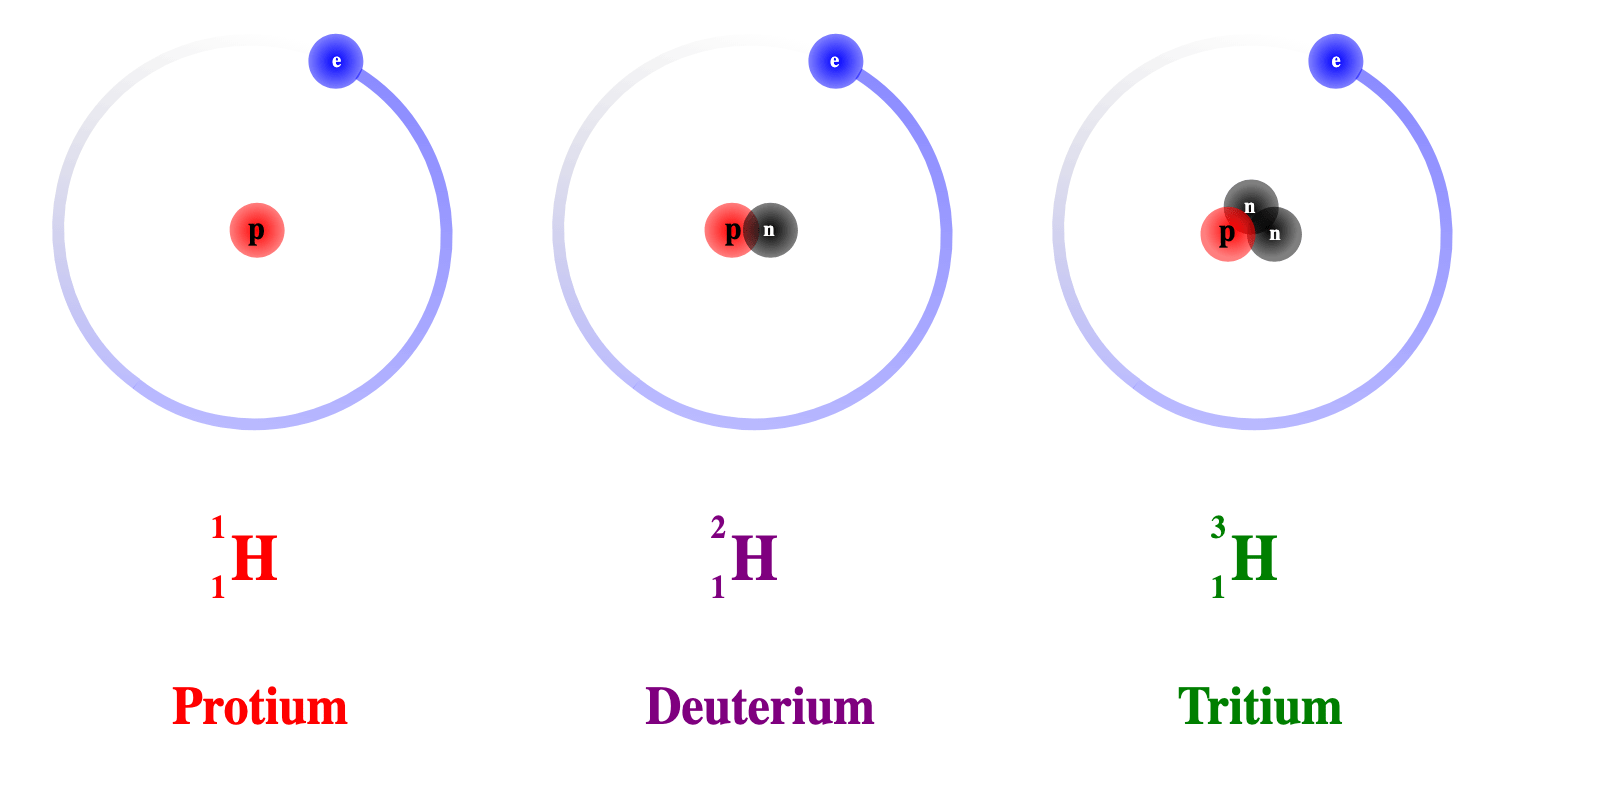 Forms of Hydrogen